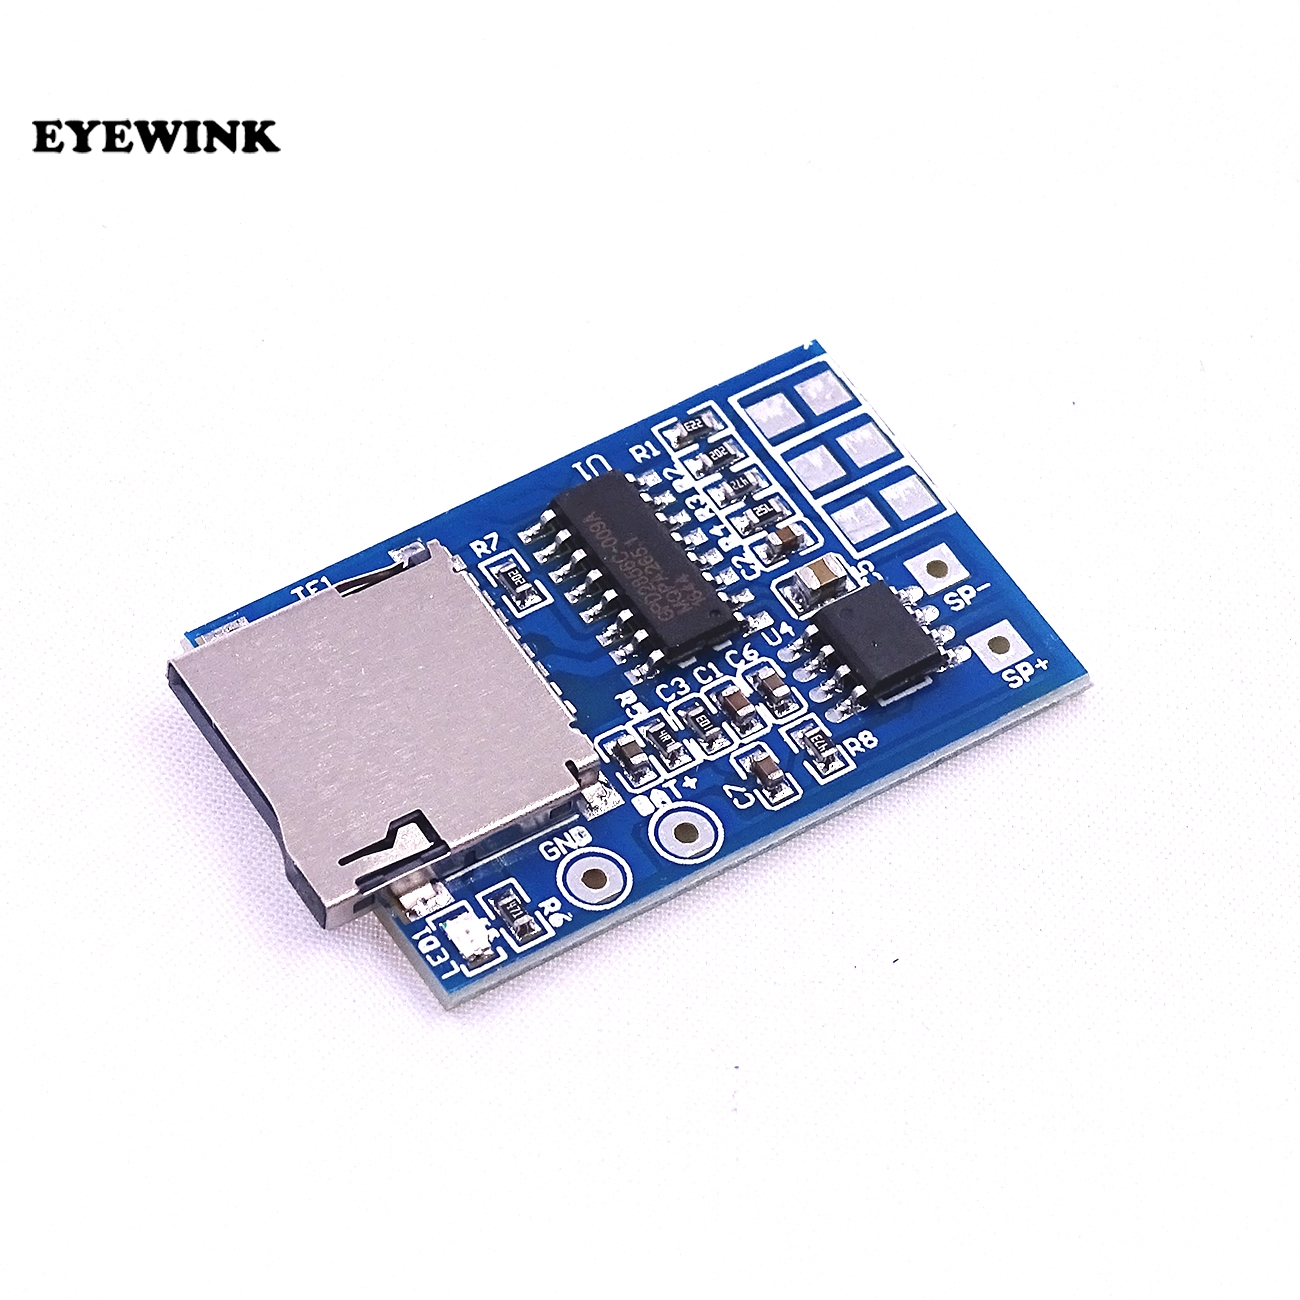 Integrated Circuits Sweet-Tempered Gpd2846a Tf Card Mp3 Decoder Board 2w Amplifier Module Active Components